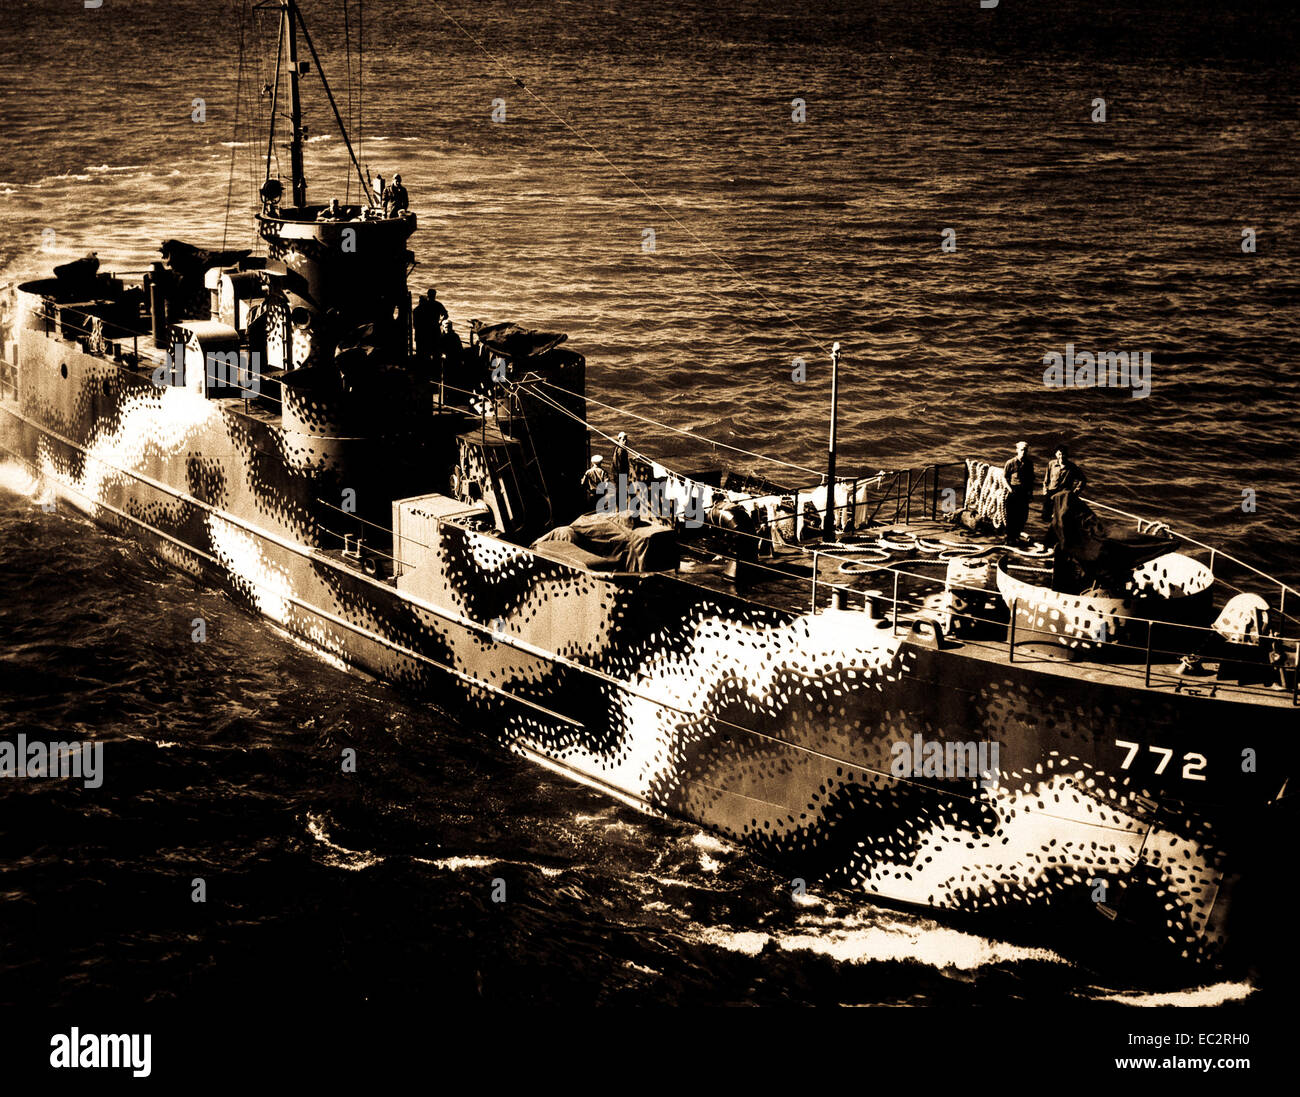 Starboard bow view of U.S. ship LCI 772, Astoria, OR, July 30, 1944.  PhoM2c. R.W. Mowday. (Navy)